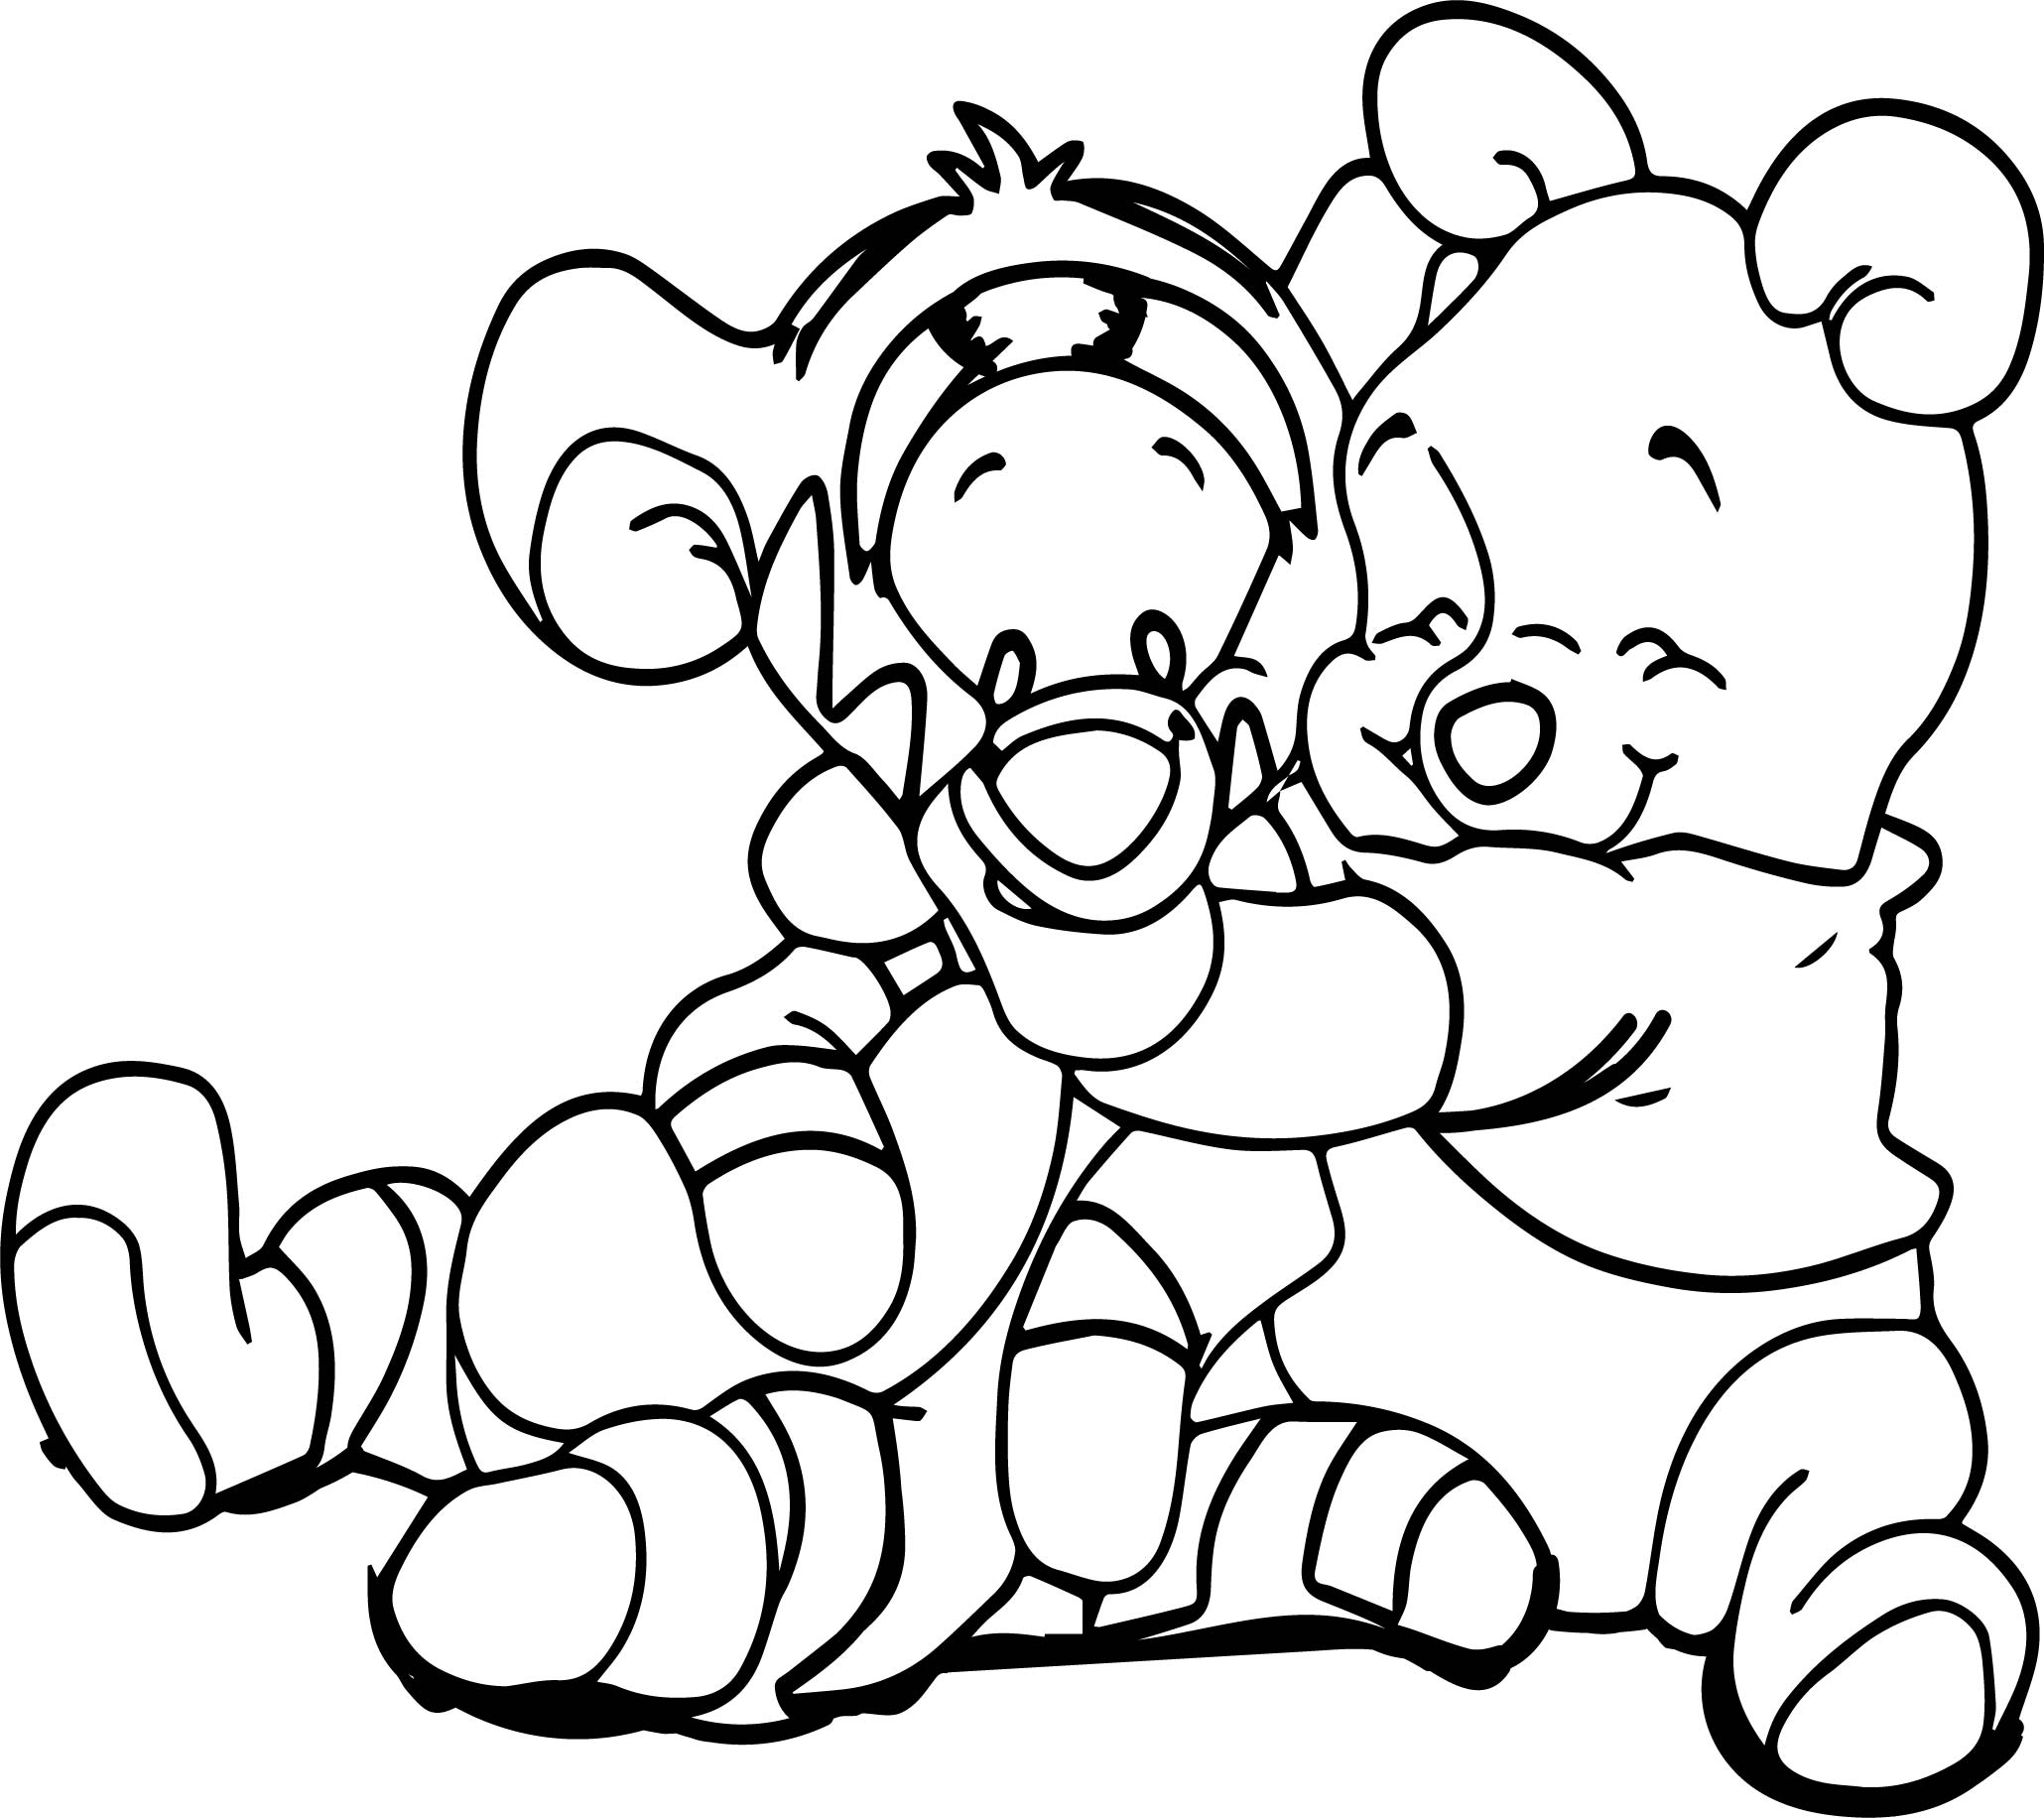 Baby Pooh And Tigger Coloring Page